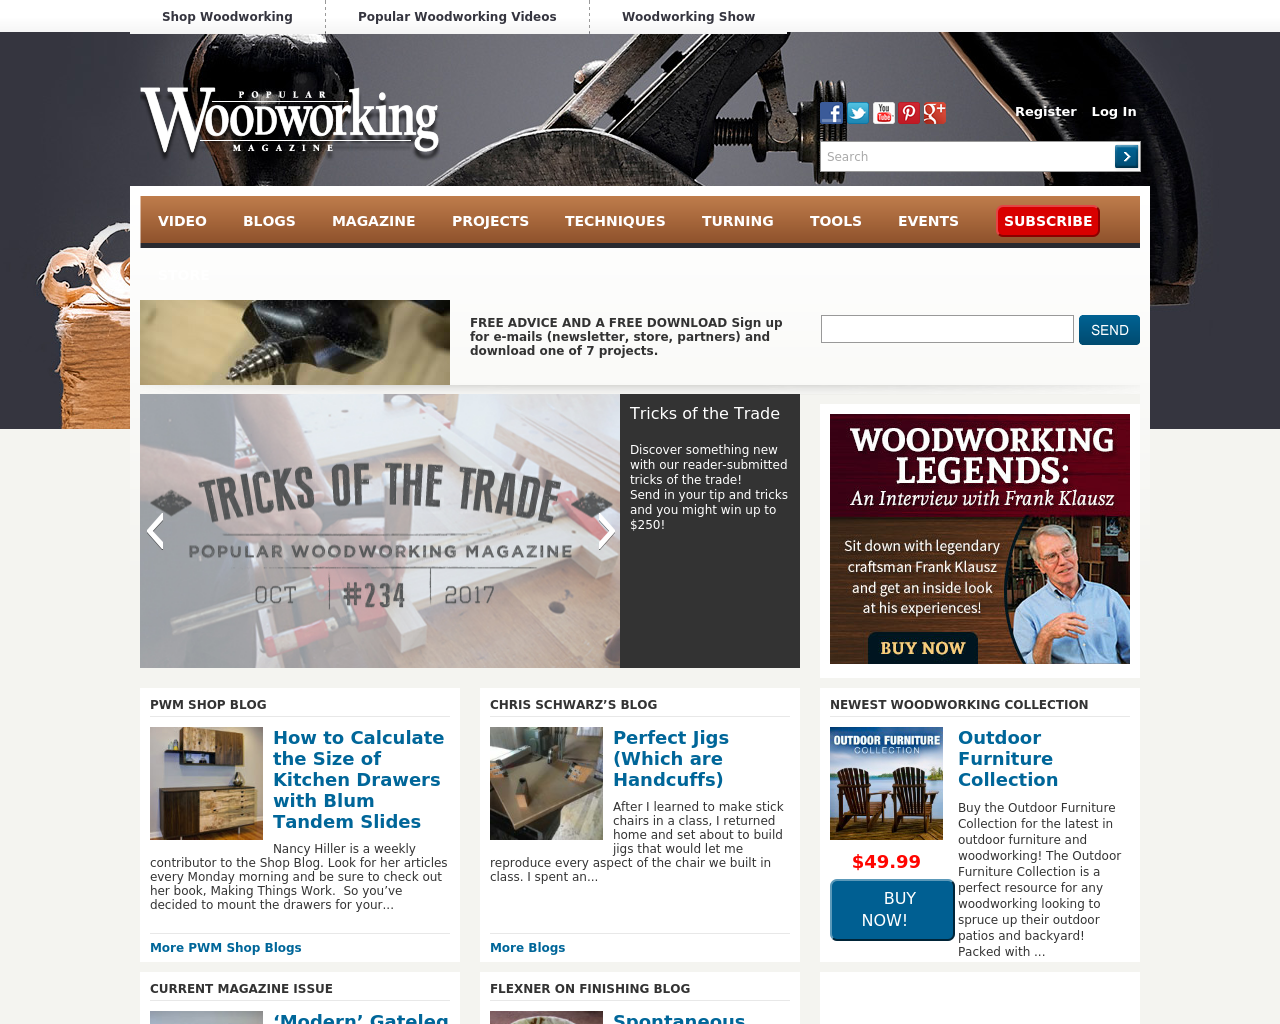 Popular-Woodworking-Magazine-Advertising-Reviews-Pricing